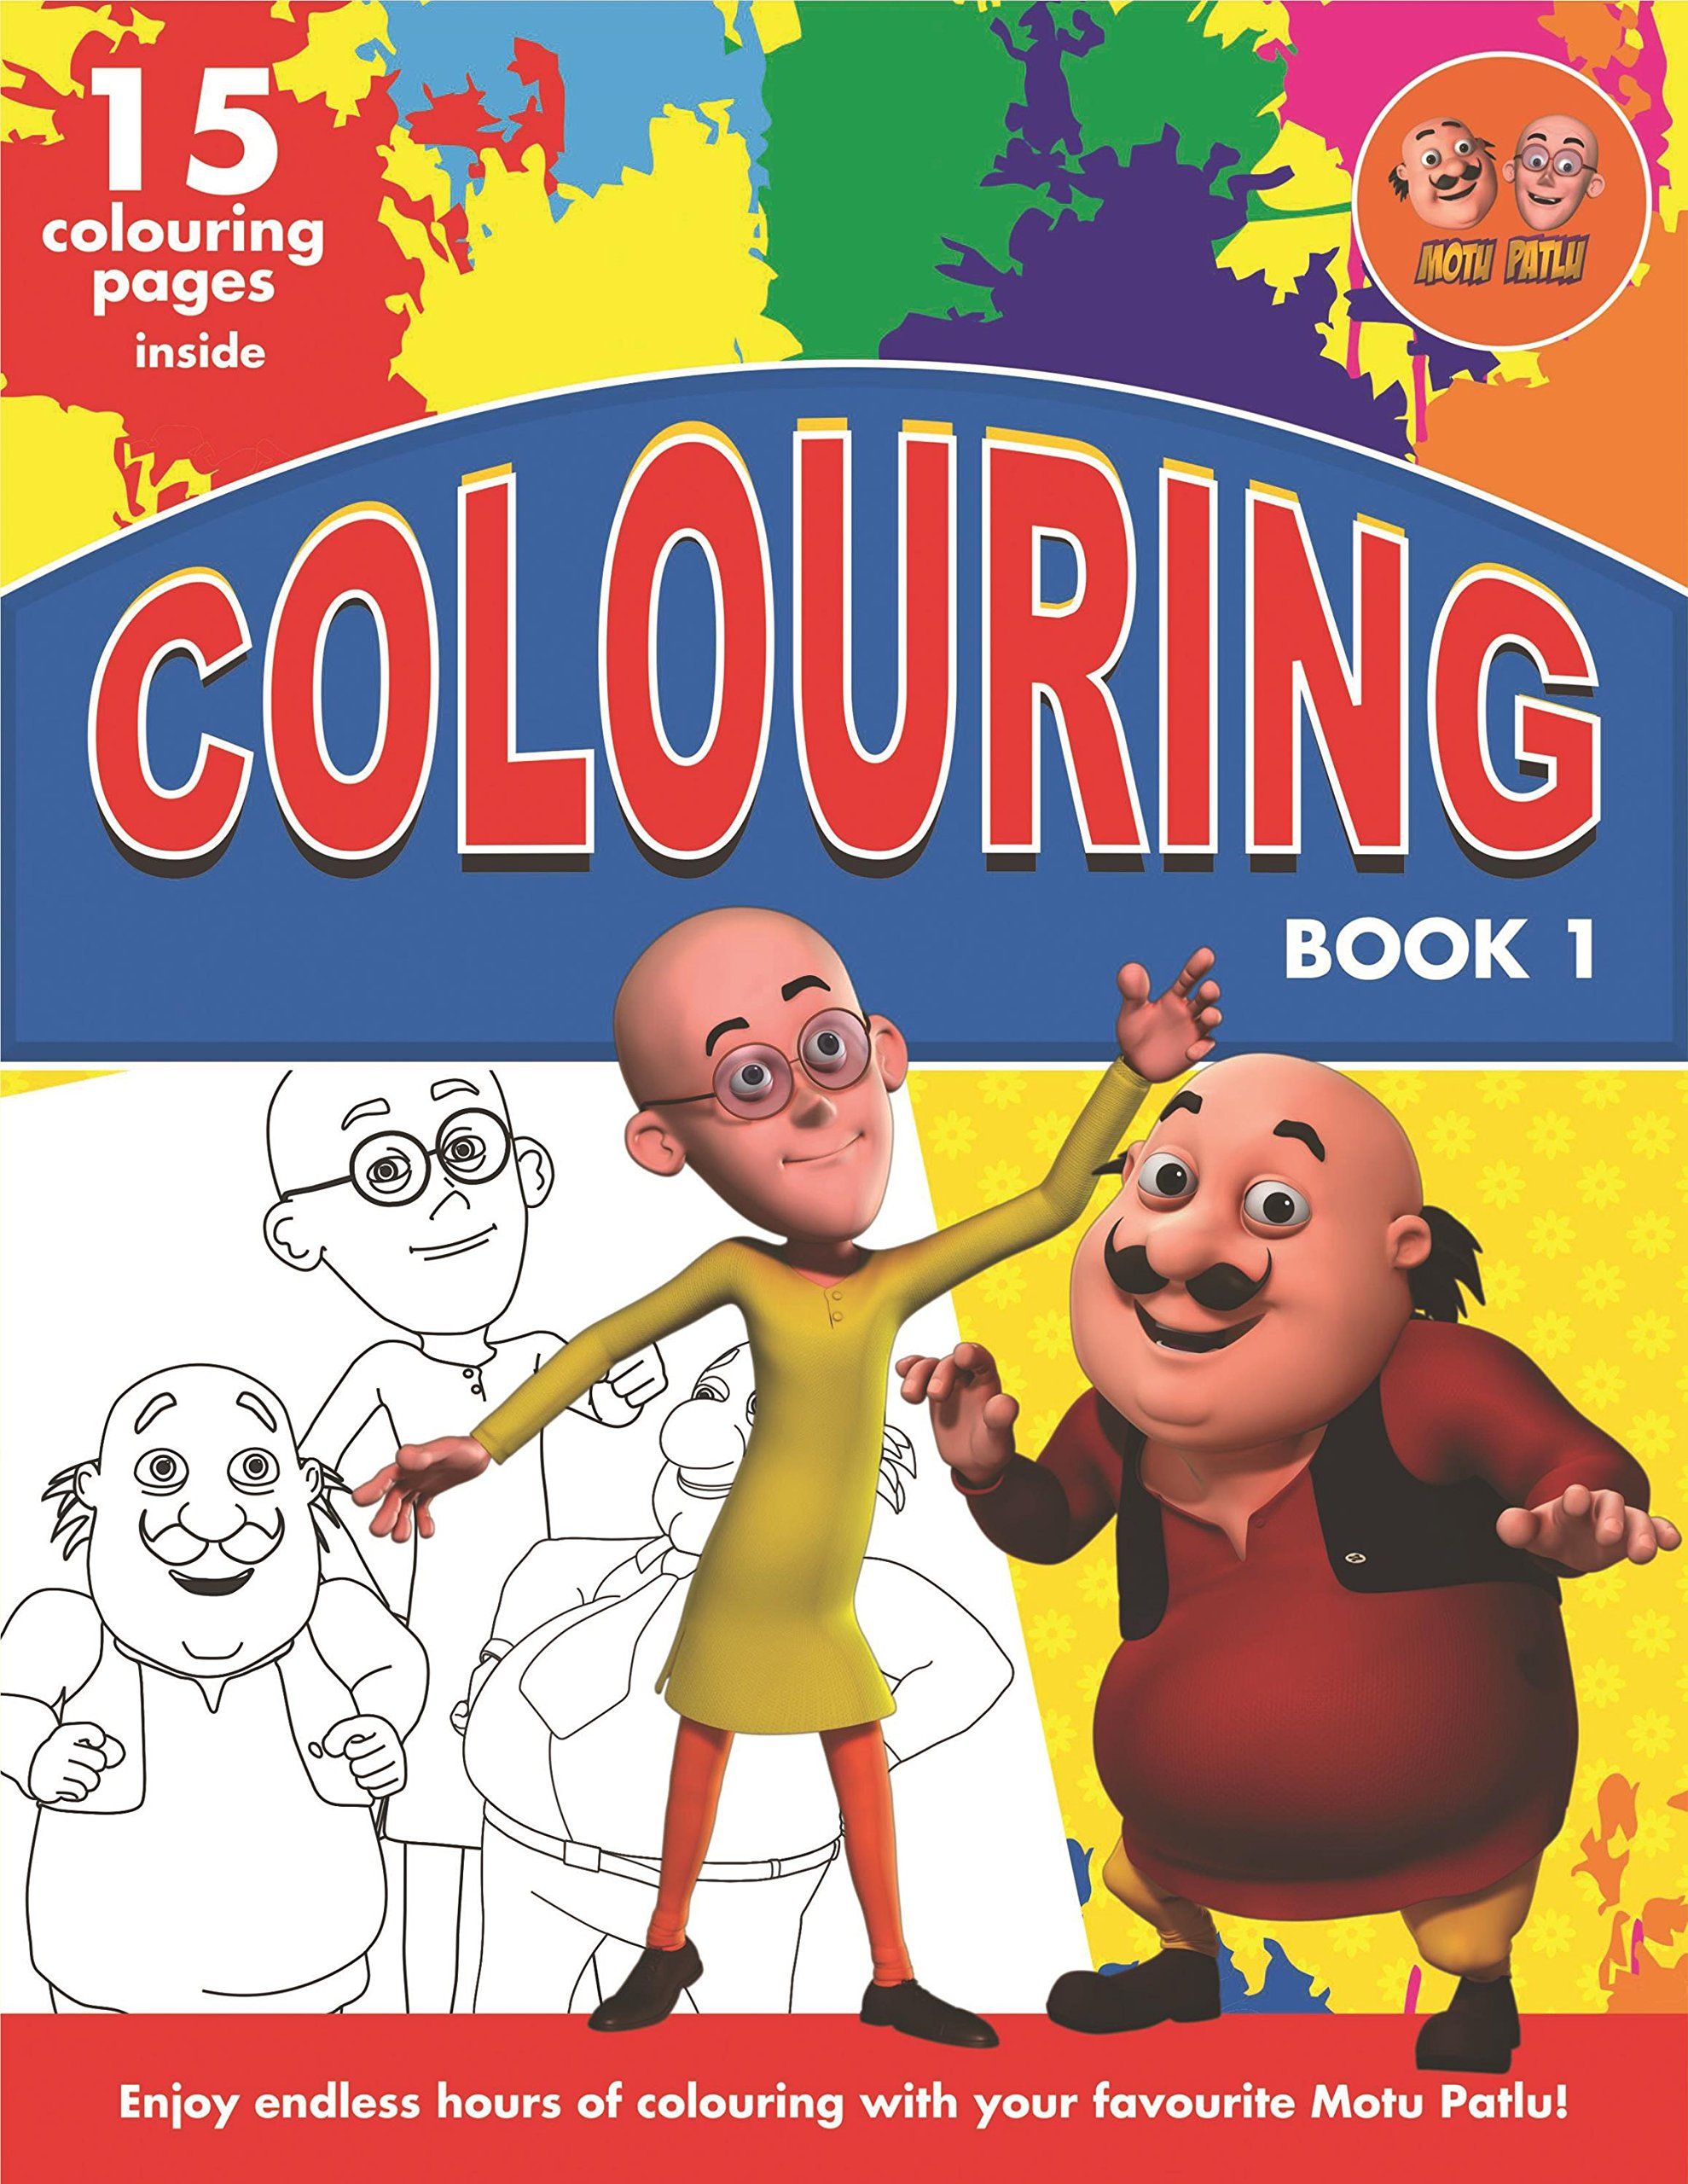 Buy Motu Patlu Colouring Book 1 Book Online At Low Prices In India